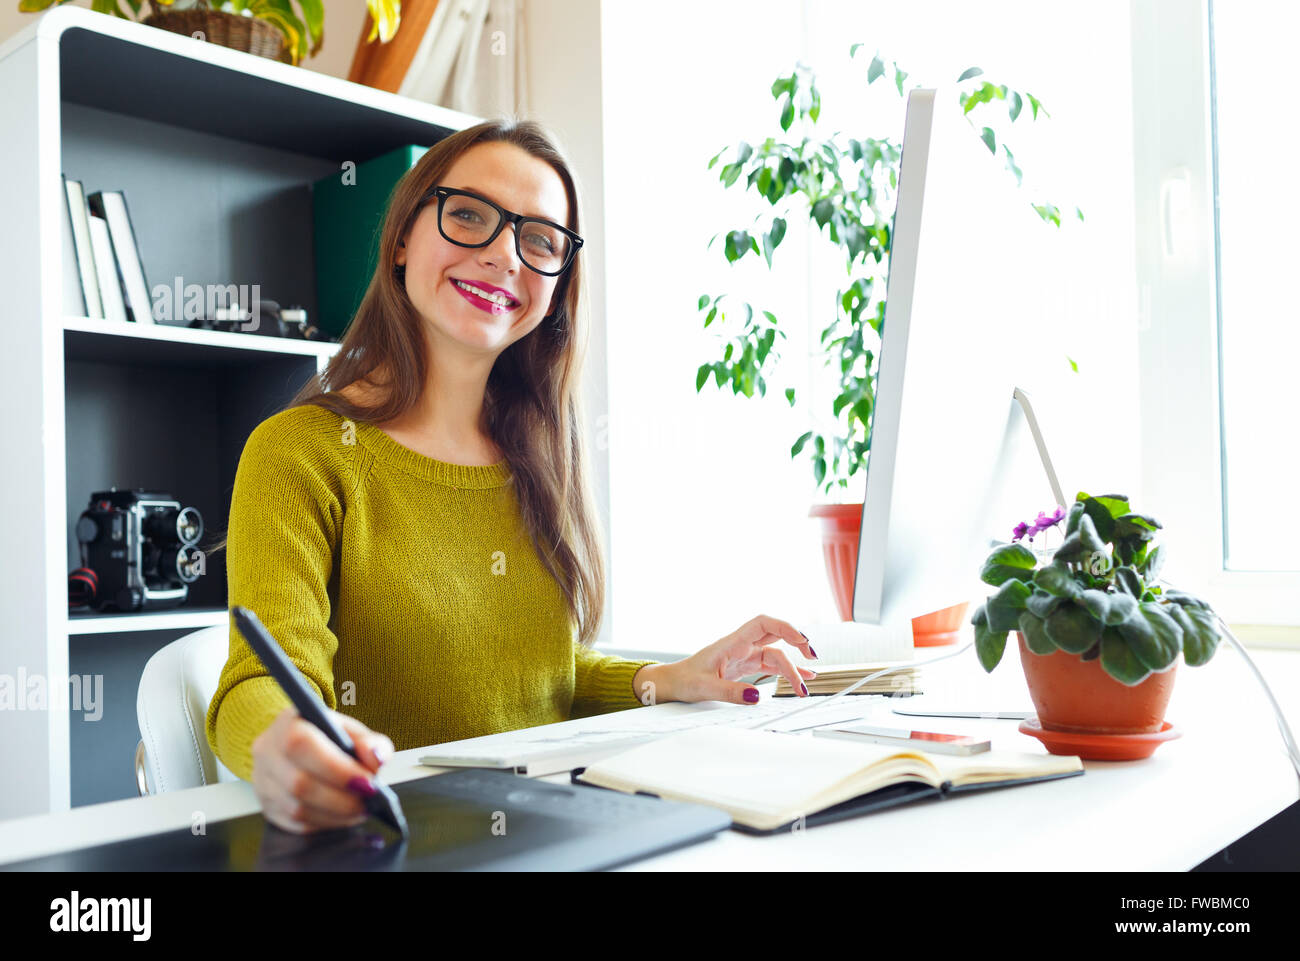 Young artist drawing something on graphic tablet at the home office - Stock Image